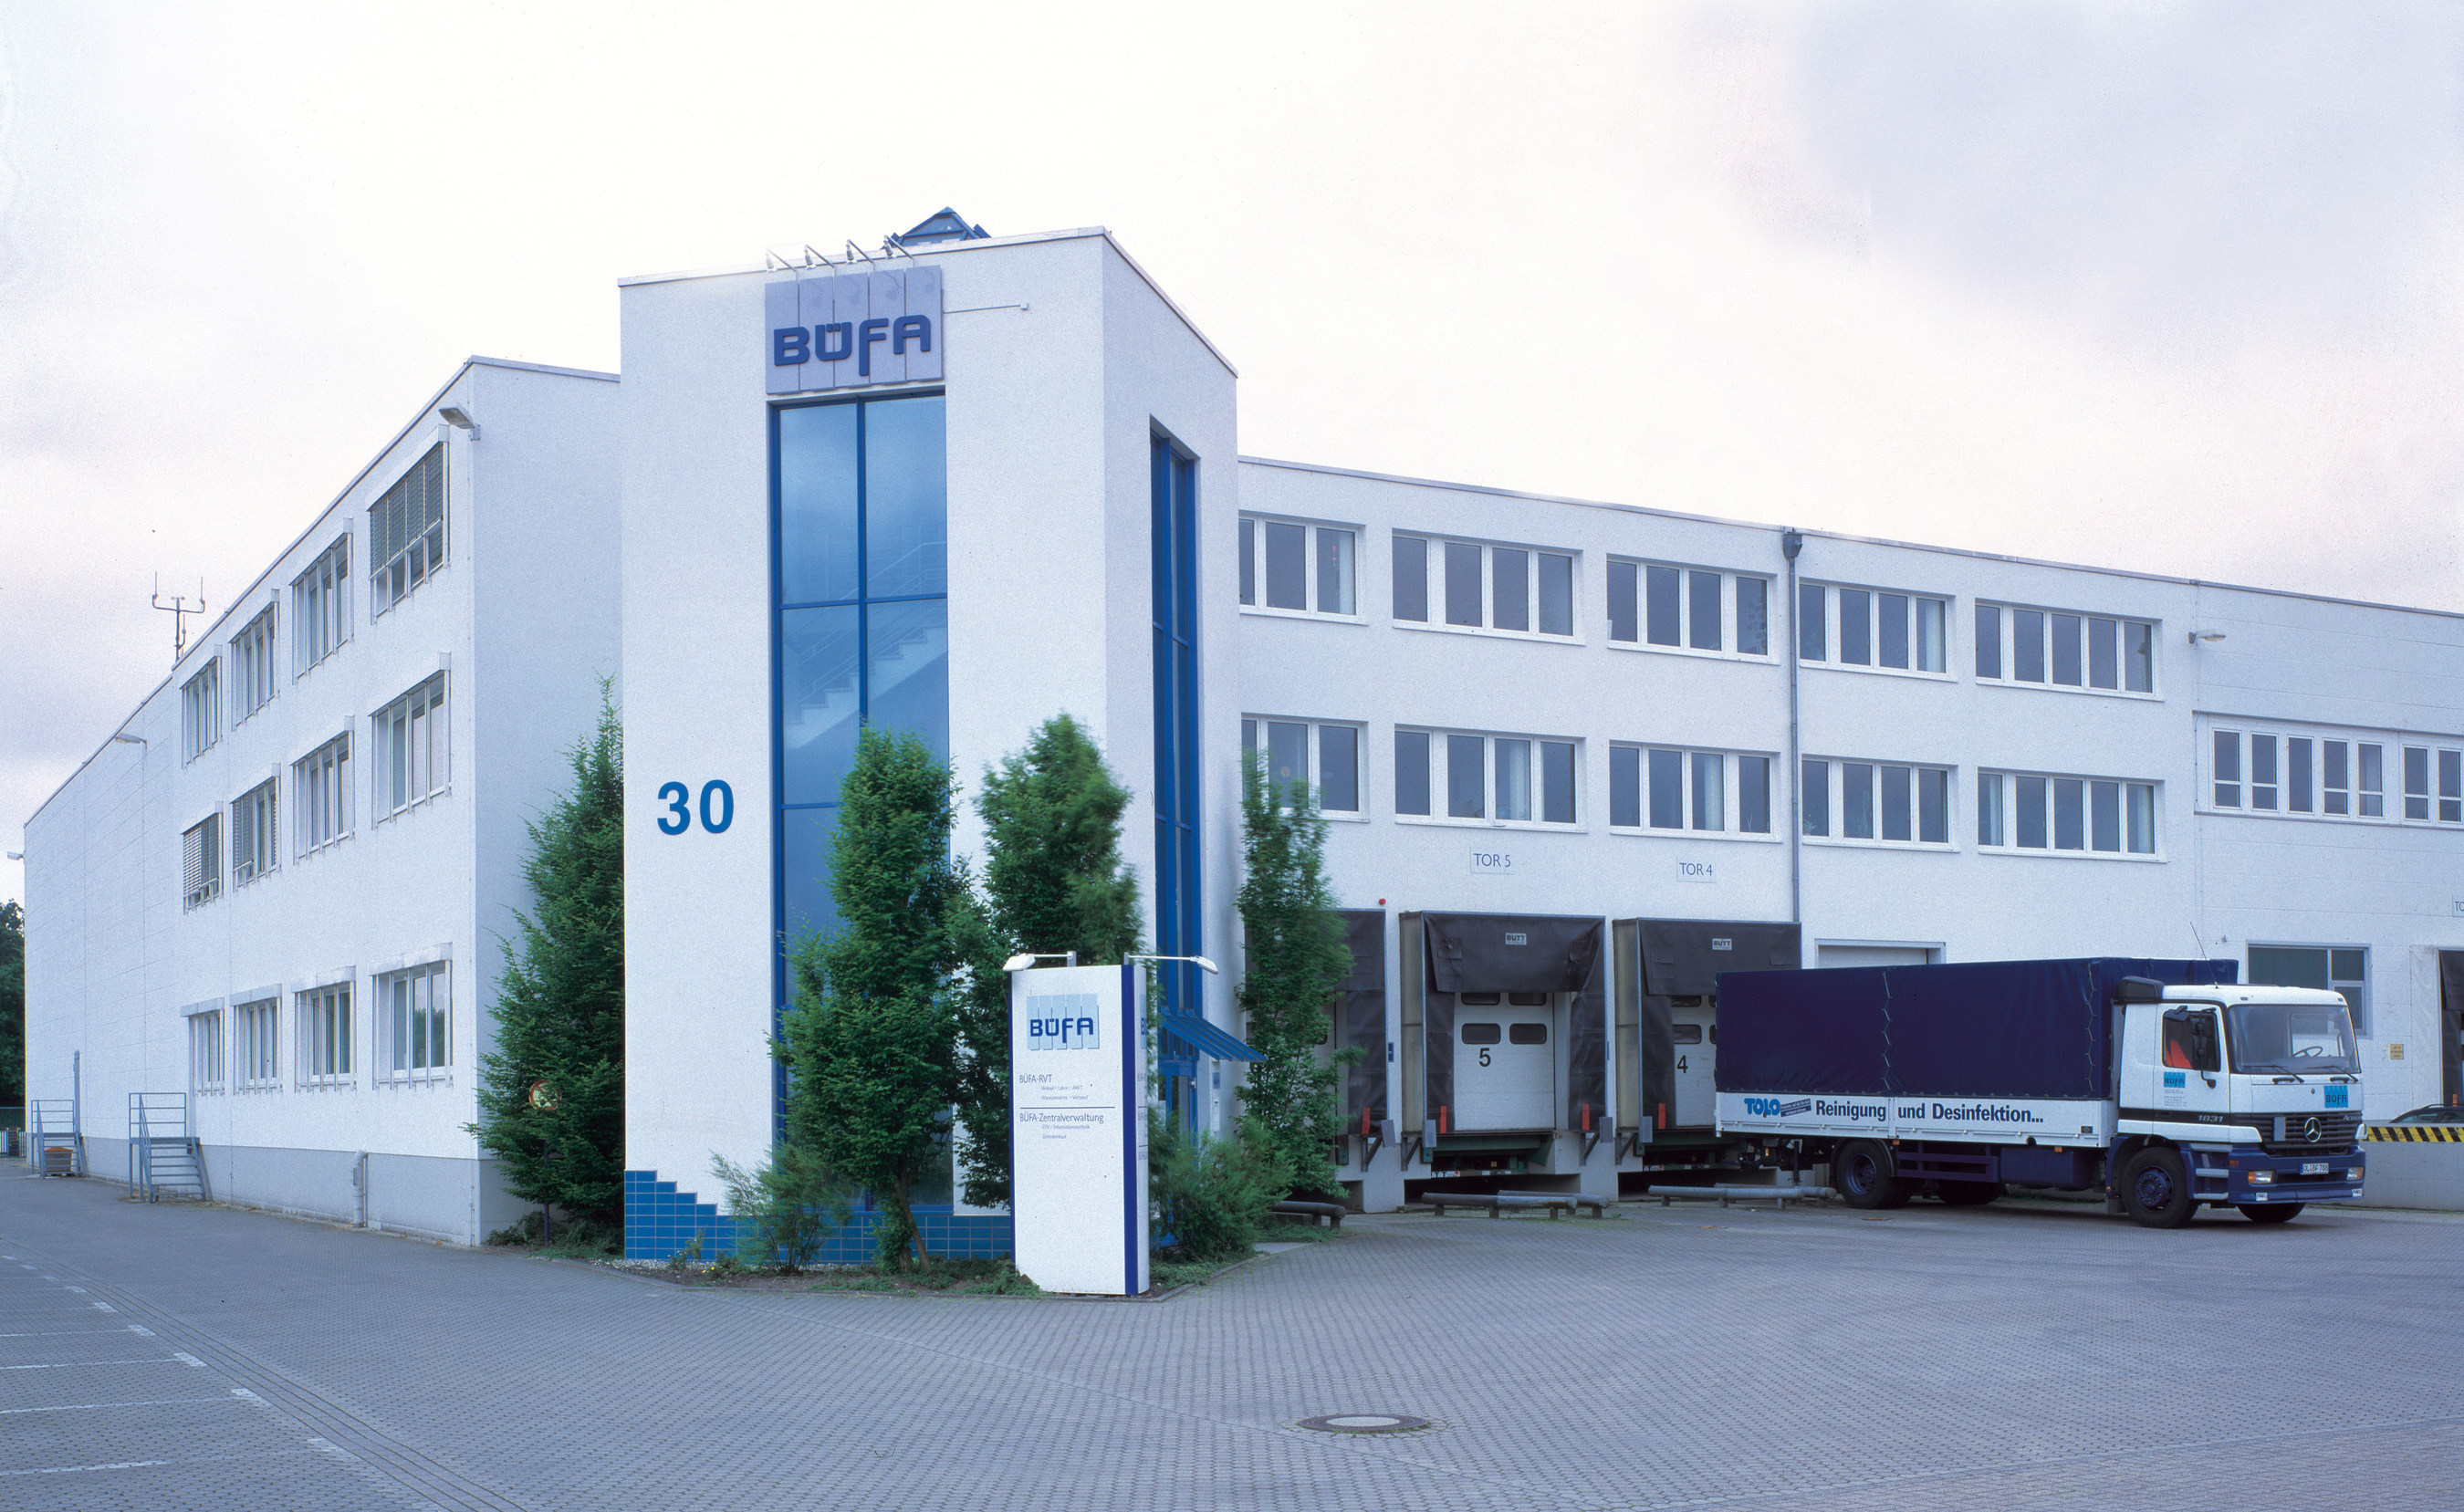 BUFA offices in Oldenburg, Germany.